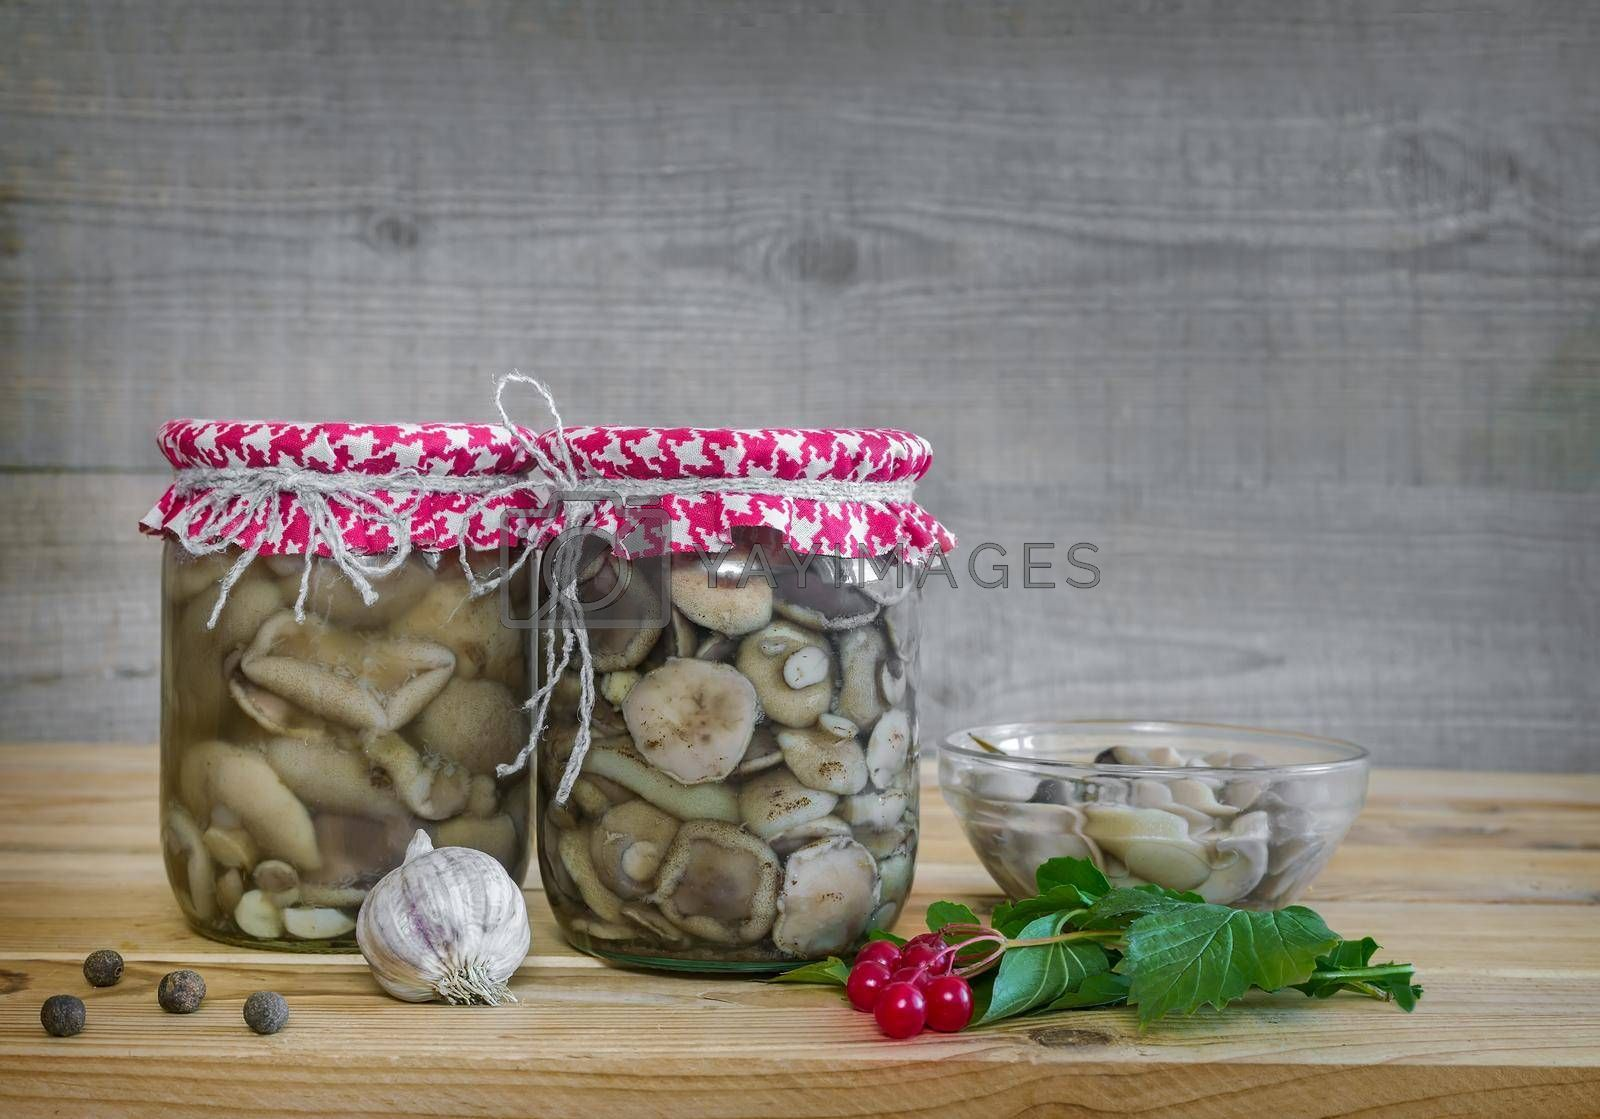 On the table with a wooden table top small glass jars with picked mushrooms. Home canning.